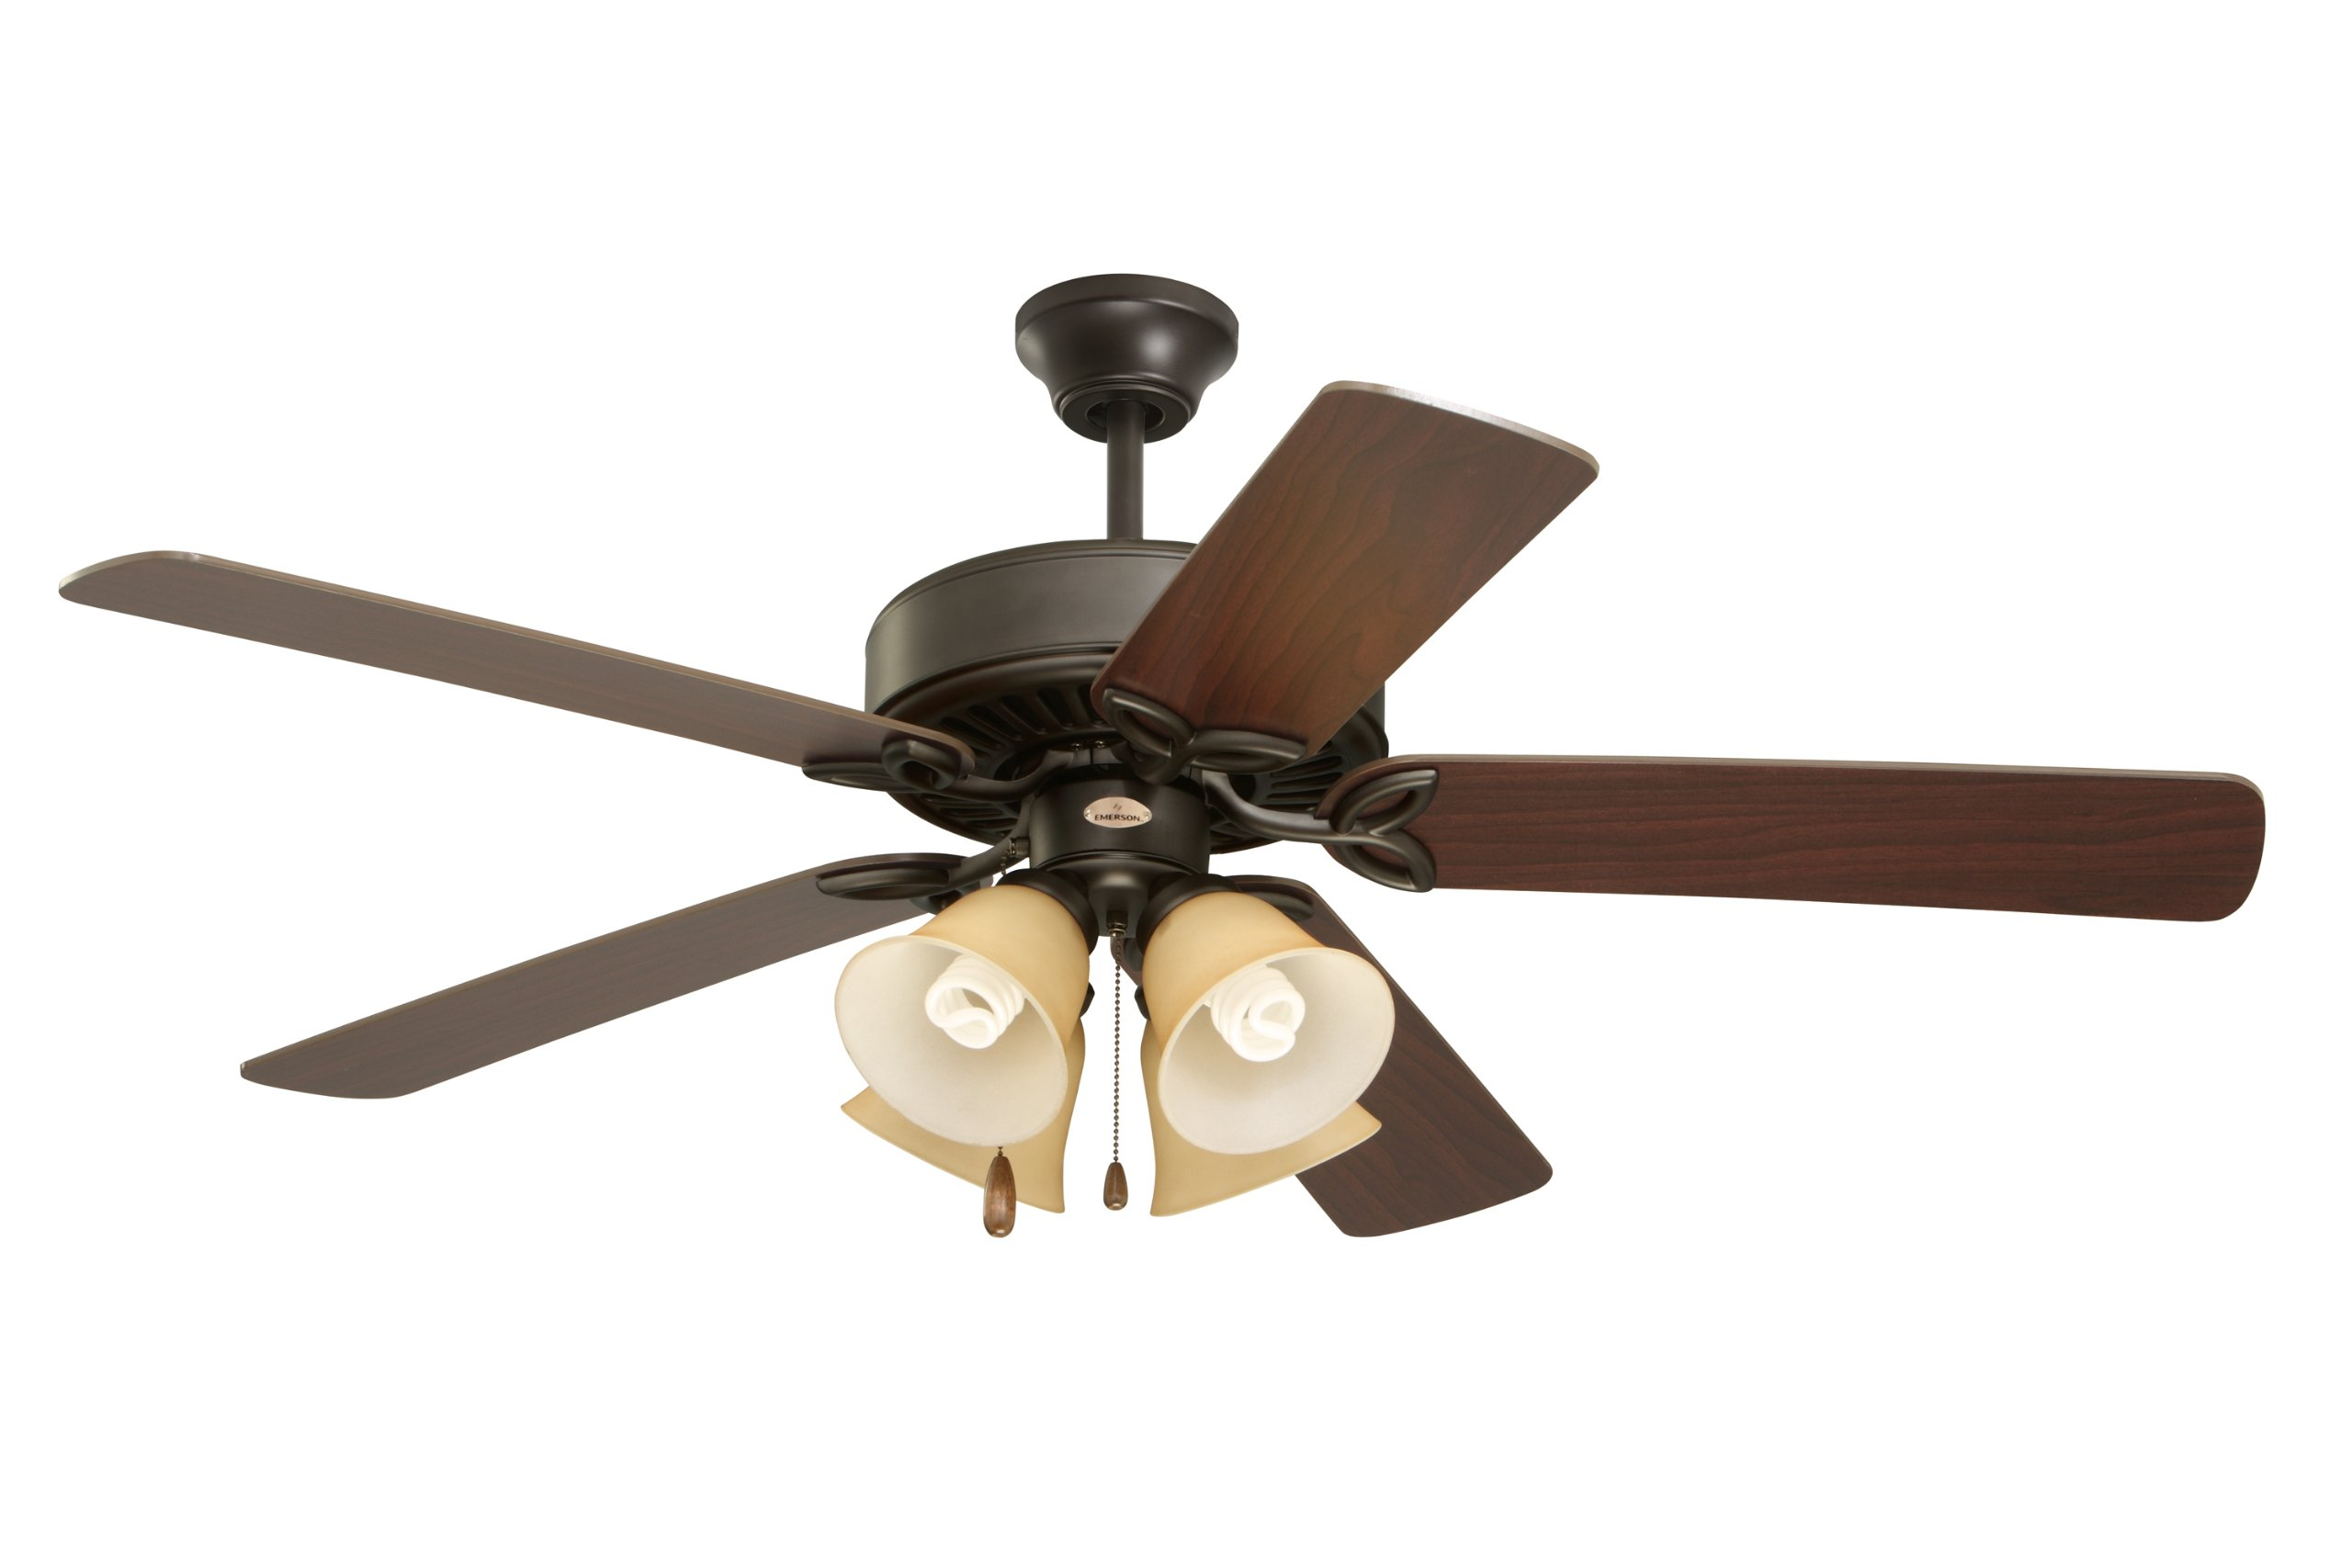 blades fan rubbed orb ul ceiling va motor vail dc location with comes oil wet bronze